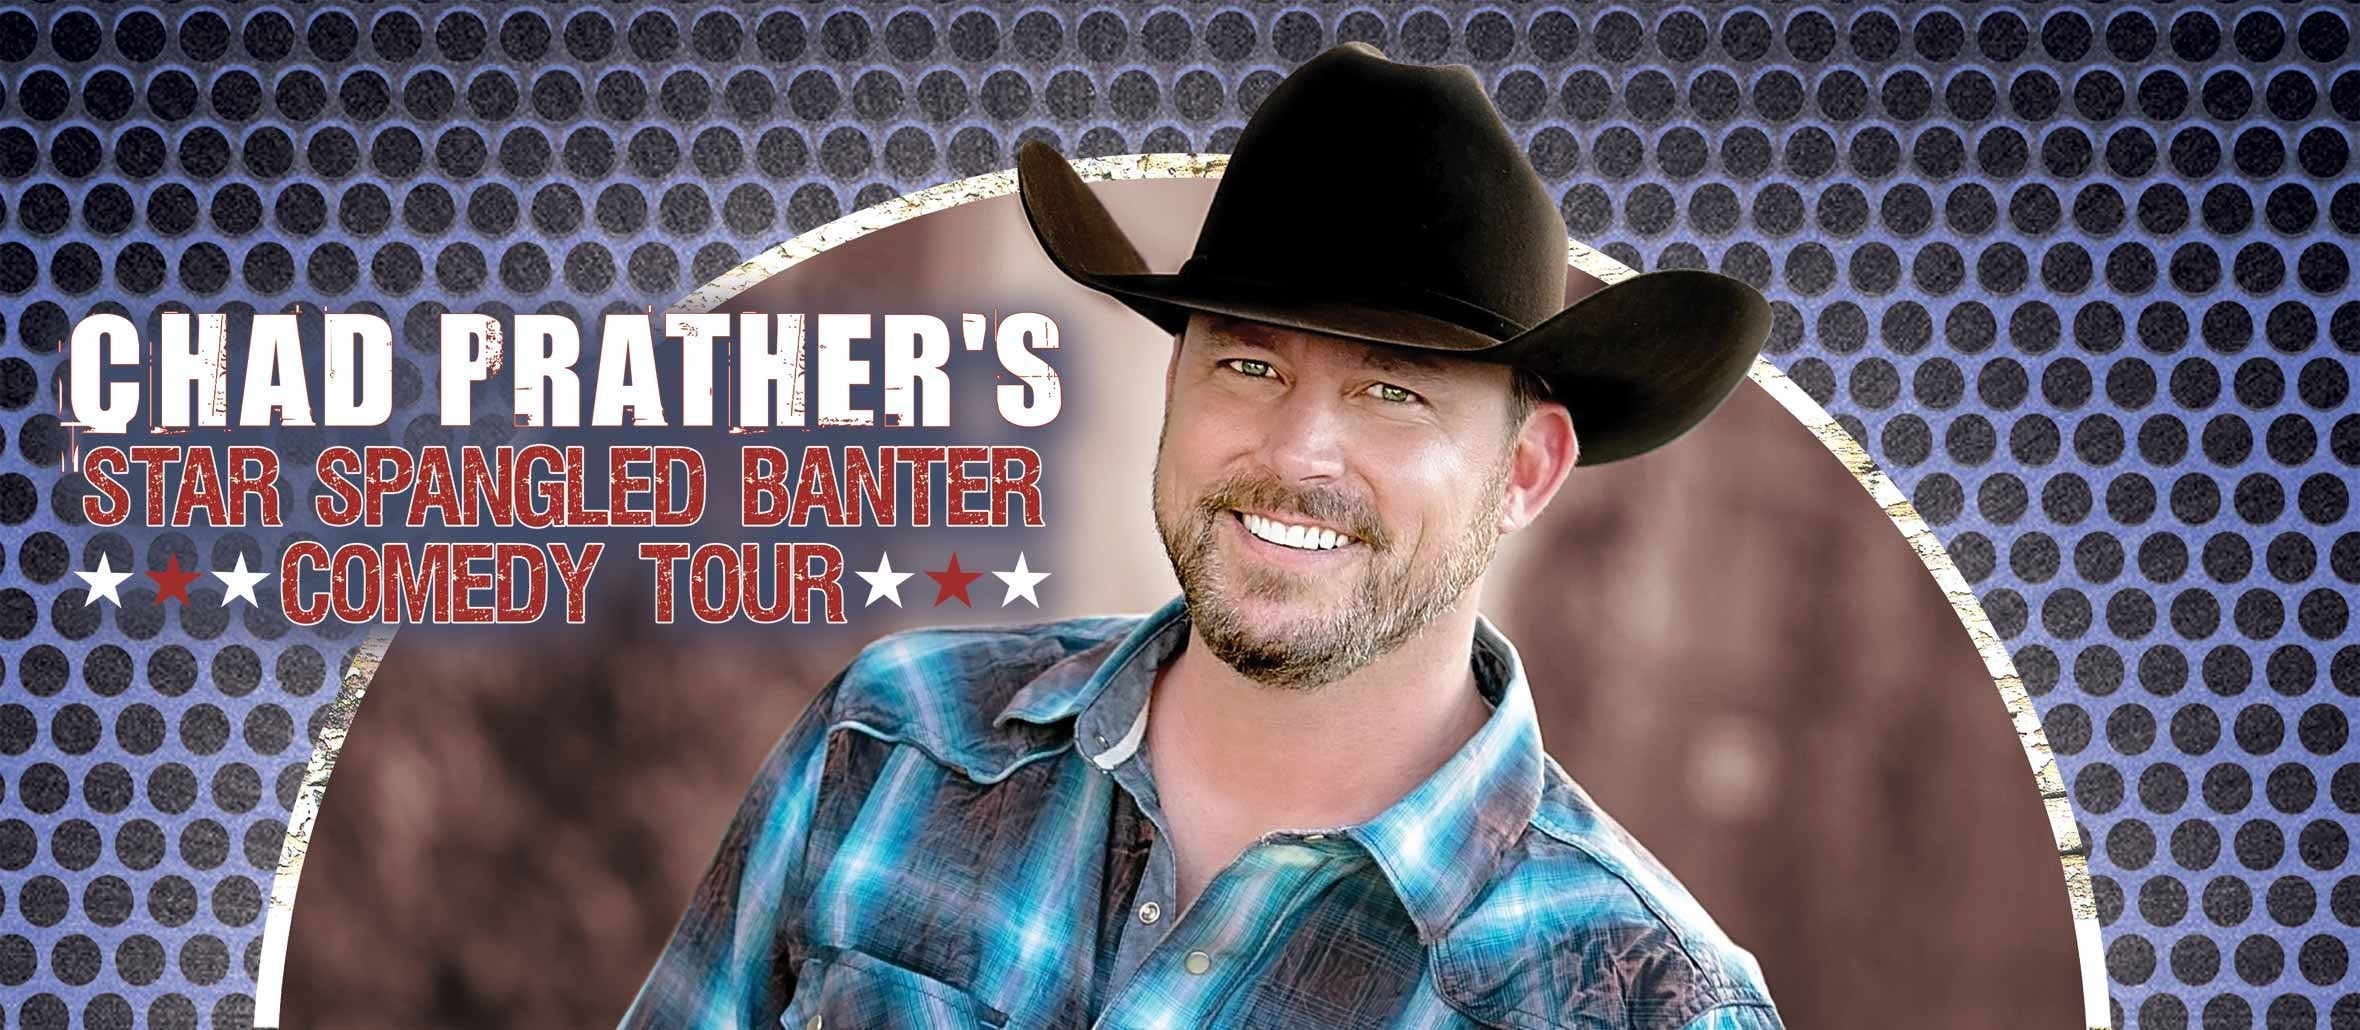 Chad Prather's Star Spangled Banter Comedy Tour